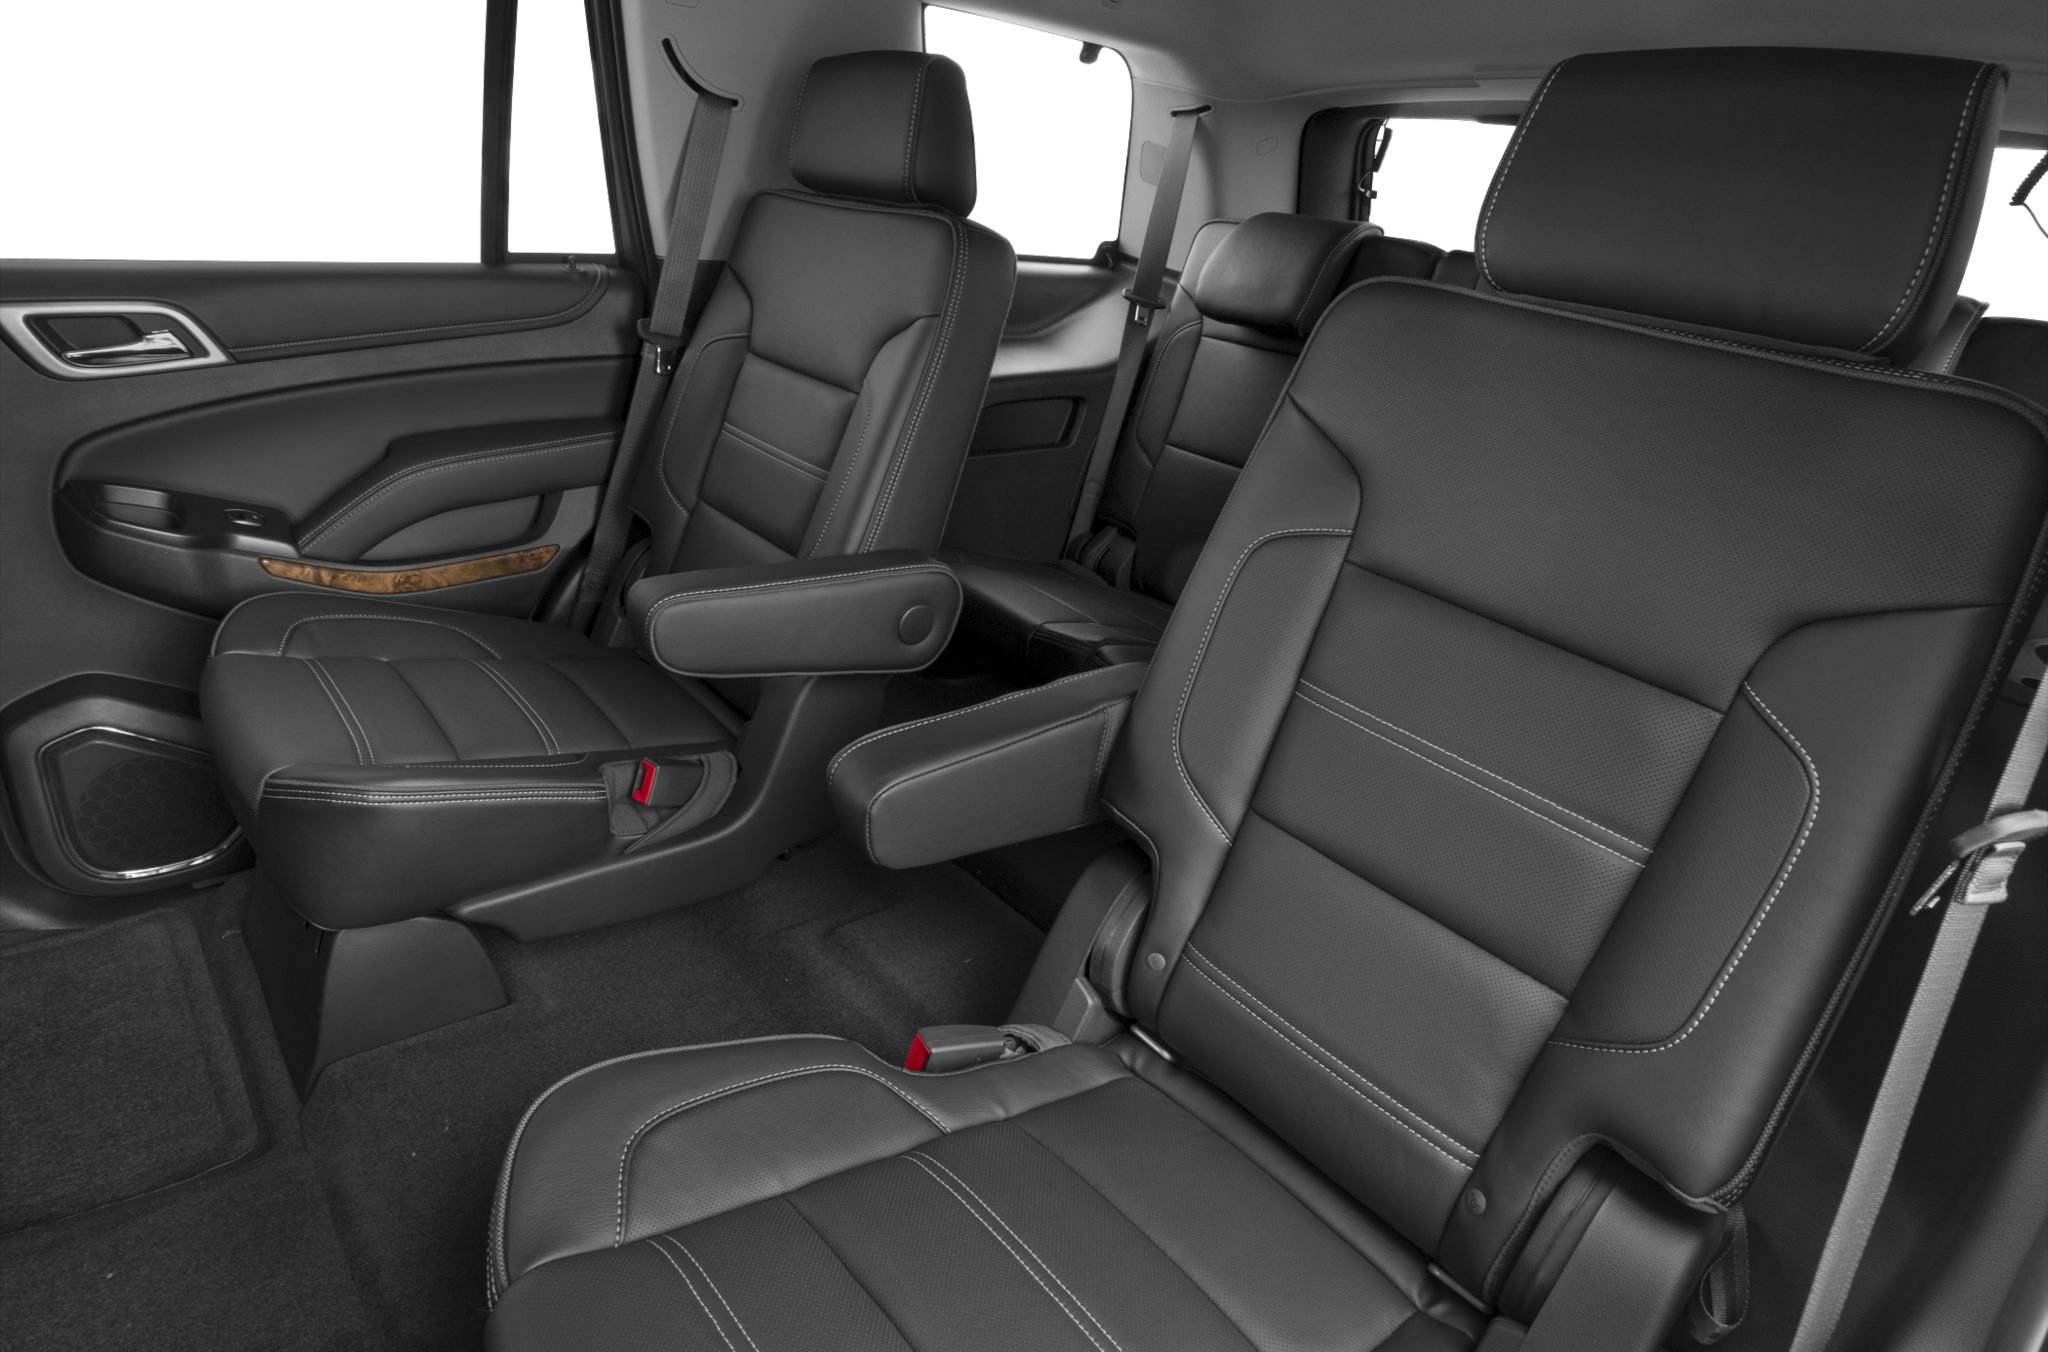 Gmc Yukon Captains Chairs 2017